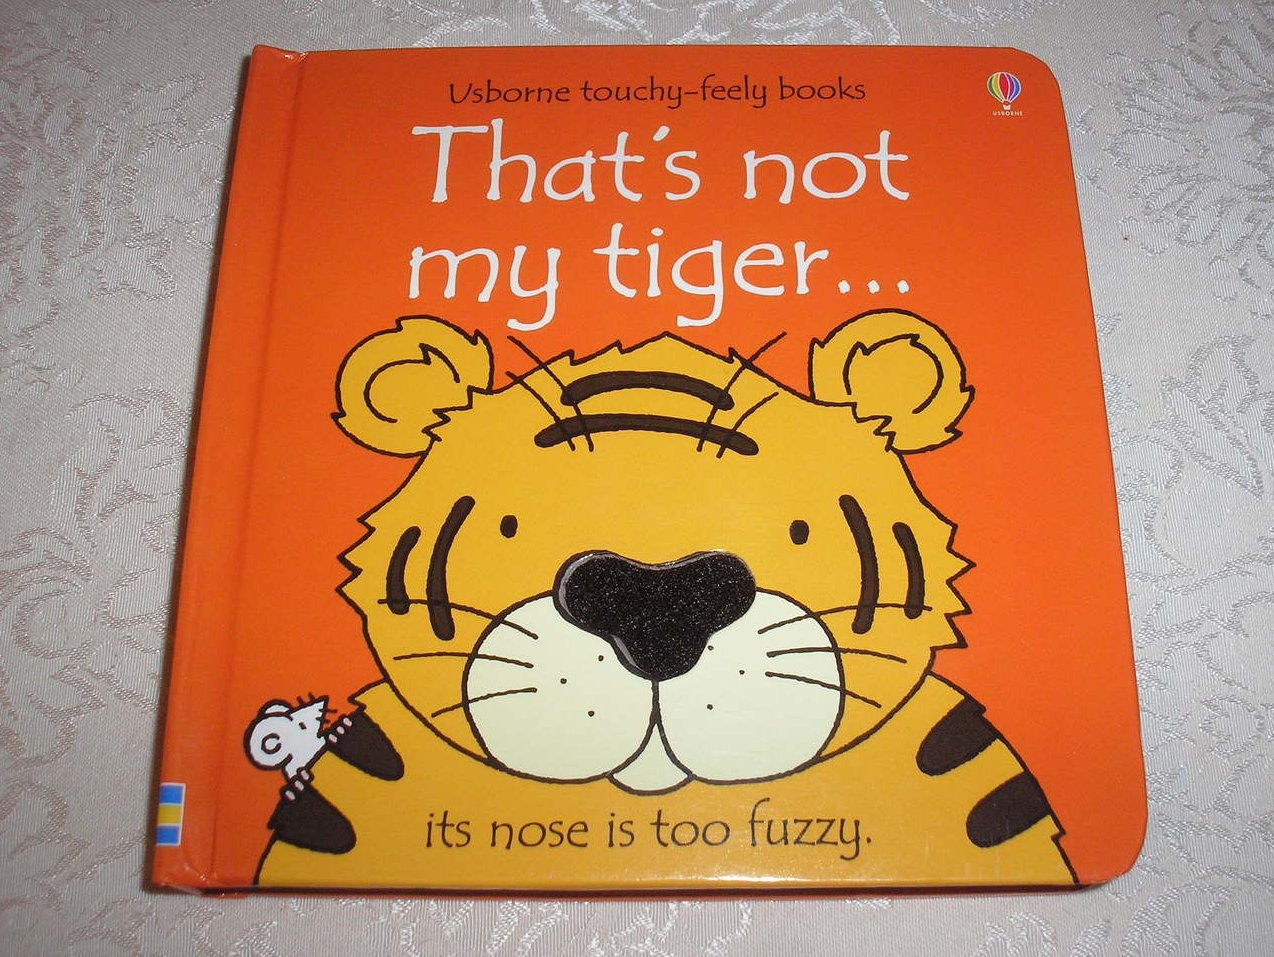 That's Not My Tiger Usborne Touchy-Feely very good board book